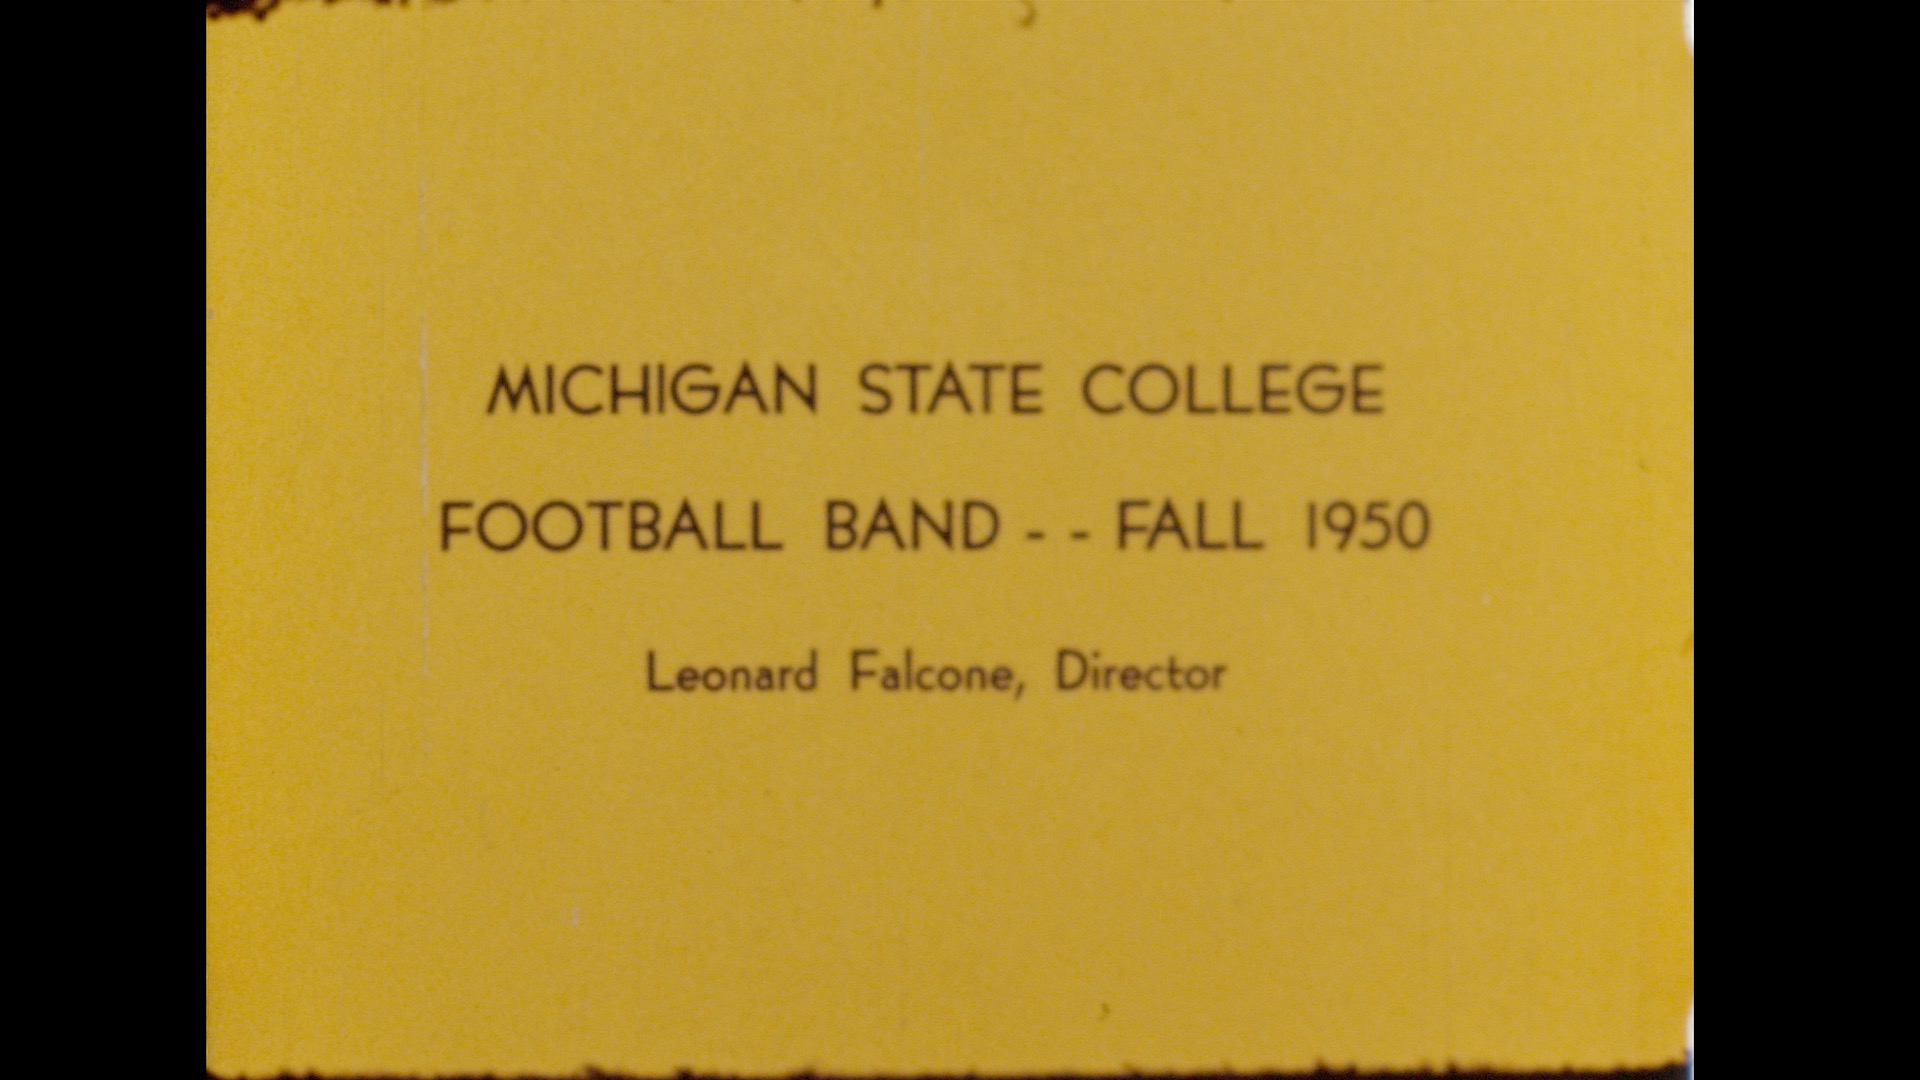 MSC Marching Band, 1950 (part 1 of 2)